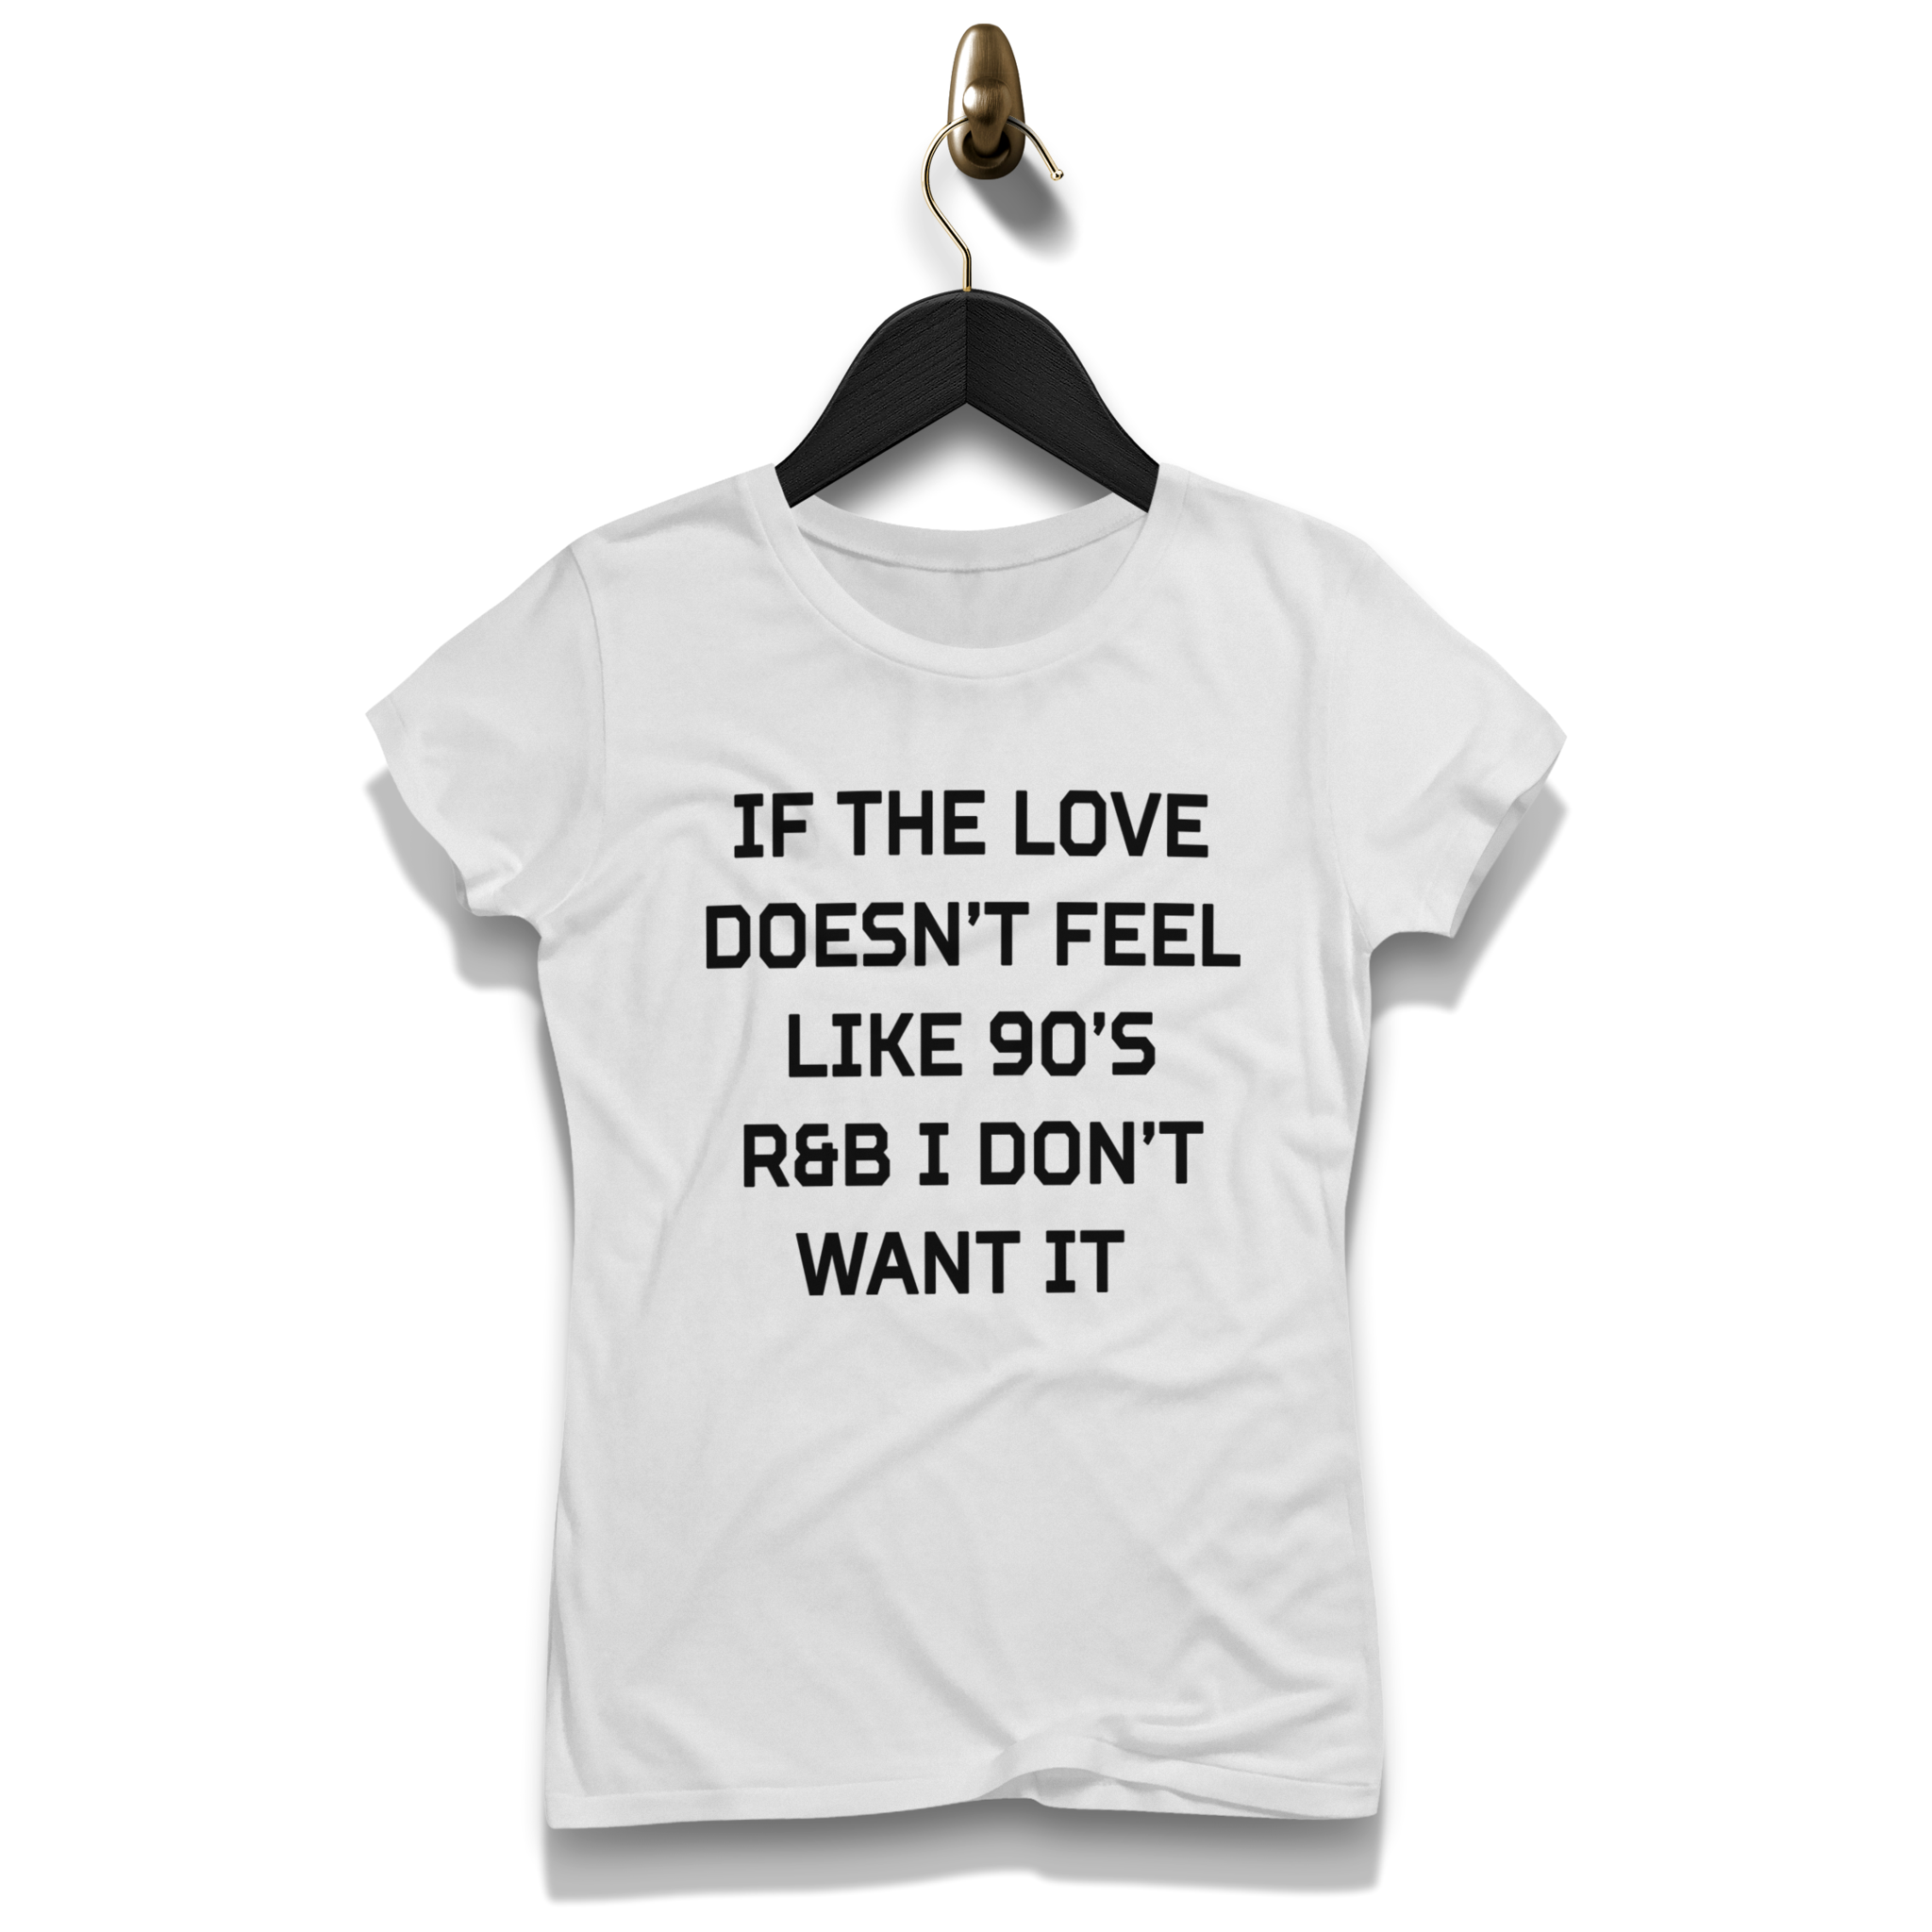 3c7dd88d4b74a If The Love Doesn t Feel Like 90 S R B I Don t Want It Shirt – Bold and  Honest